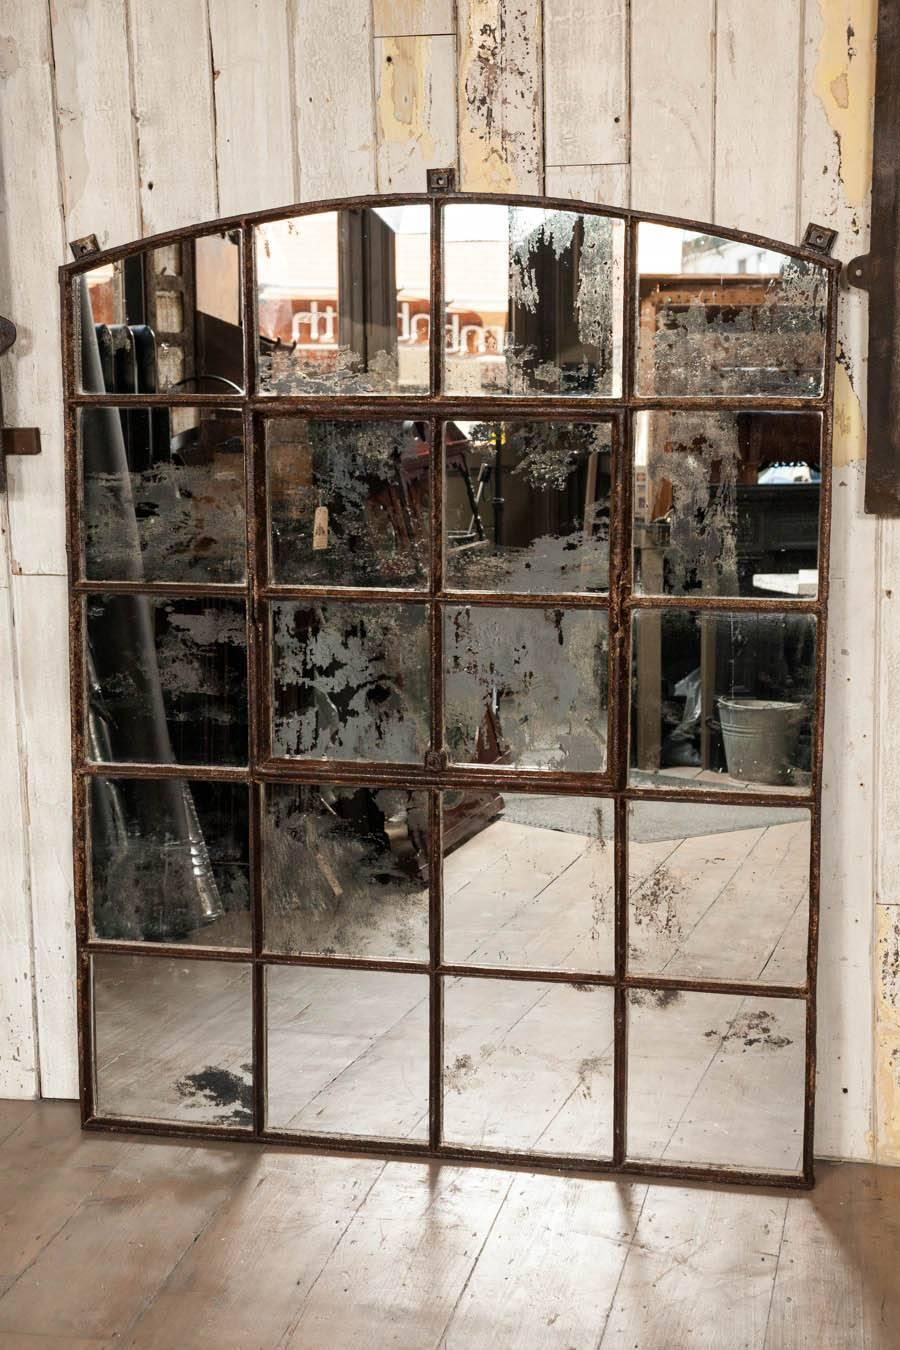 Victorian Cast Iron Warehouse Window Mirror 1stdibs Com Window Mirror Warehouse Windows Industrial Floor Mirrors